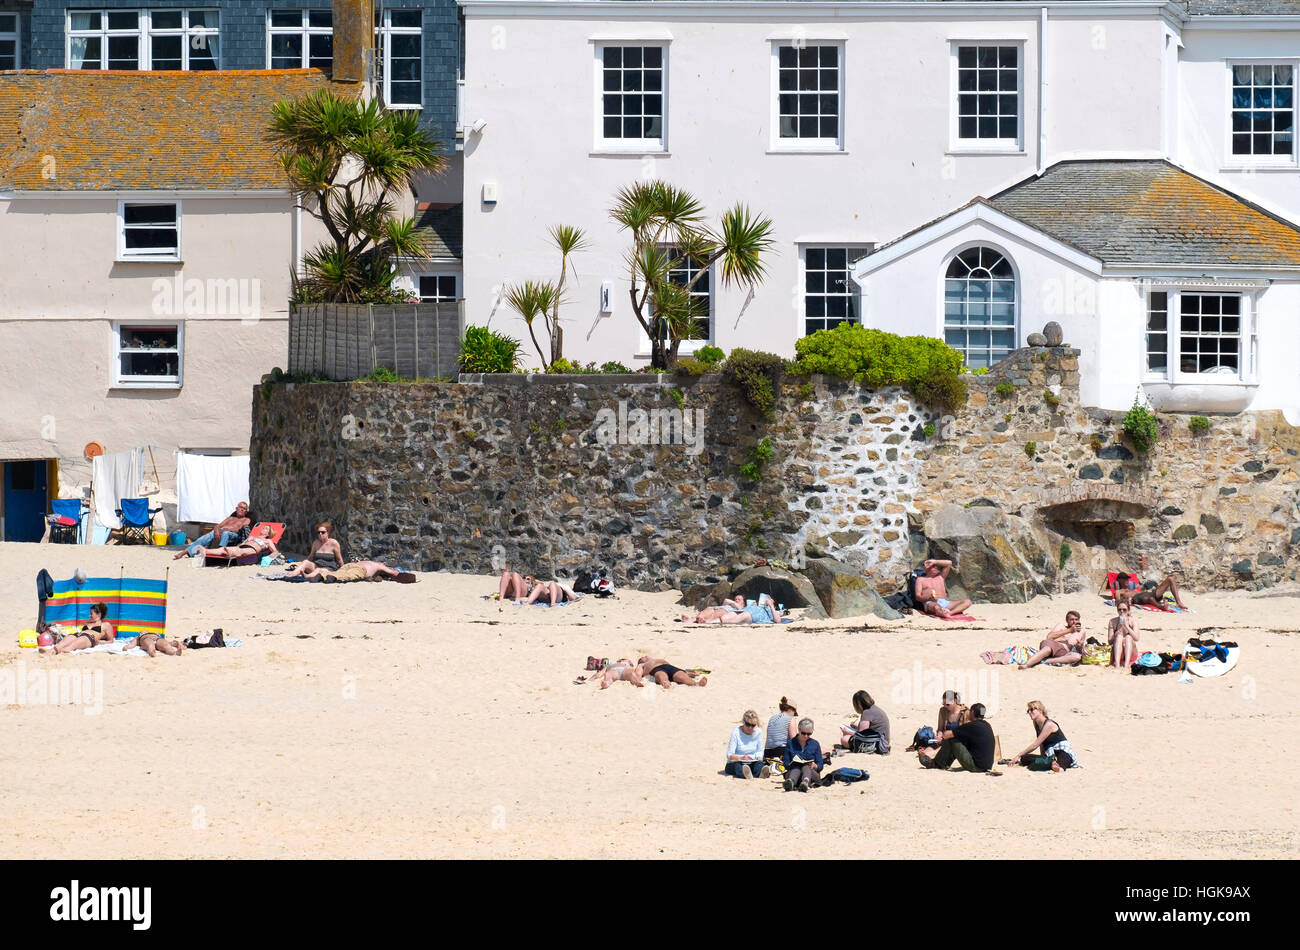 The harbour beach at St.Ives in Cornwall, England, UK Stock Photo